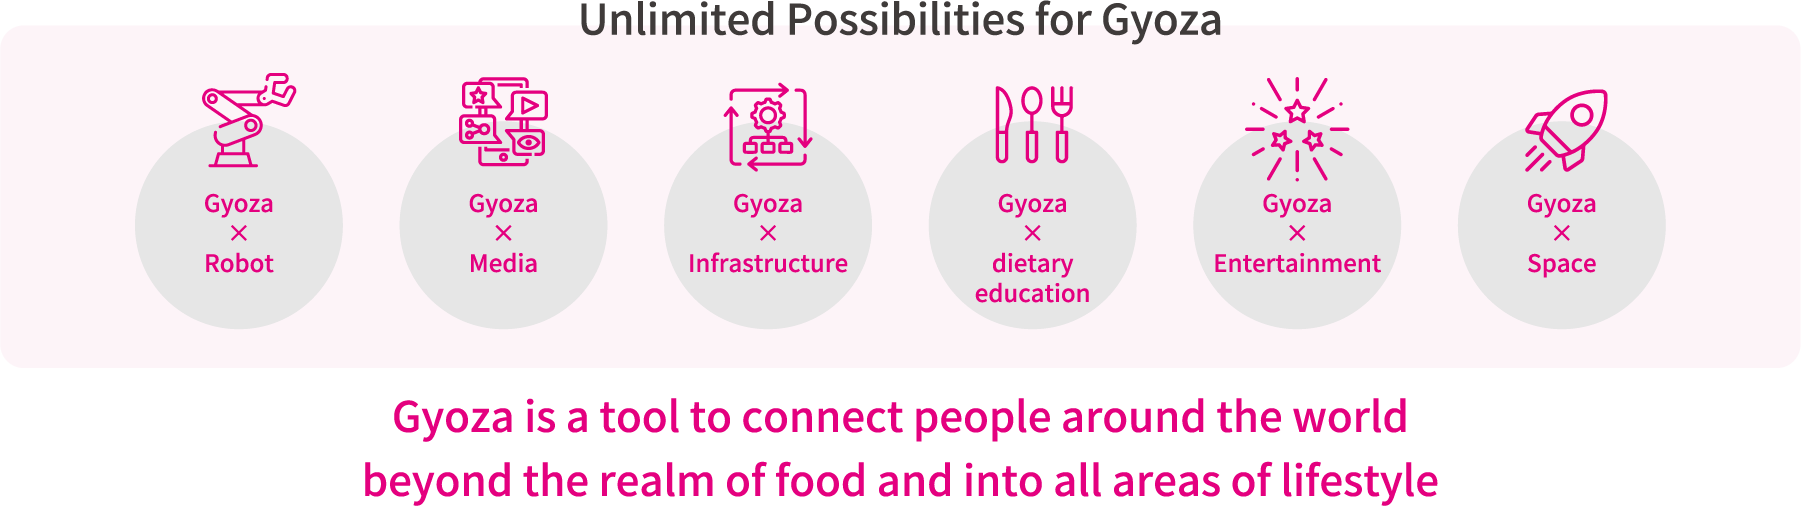 Unlimited Possibilities for Gyoza Gyoza is a tool to connect people around the world beyond the realm of food and into all areas of lifestyle